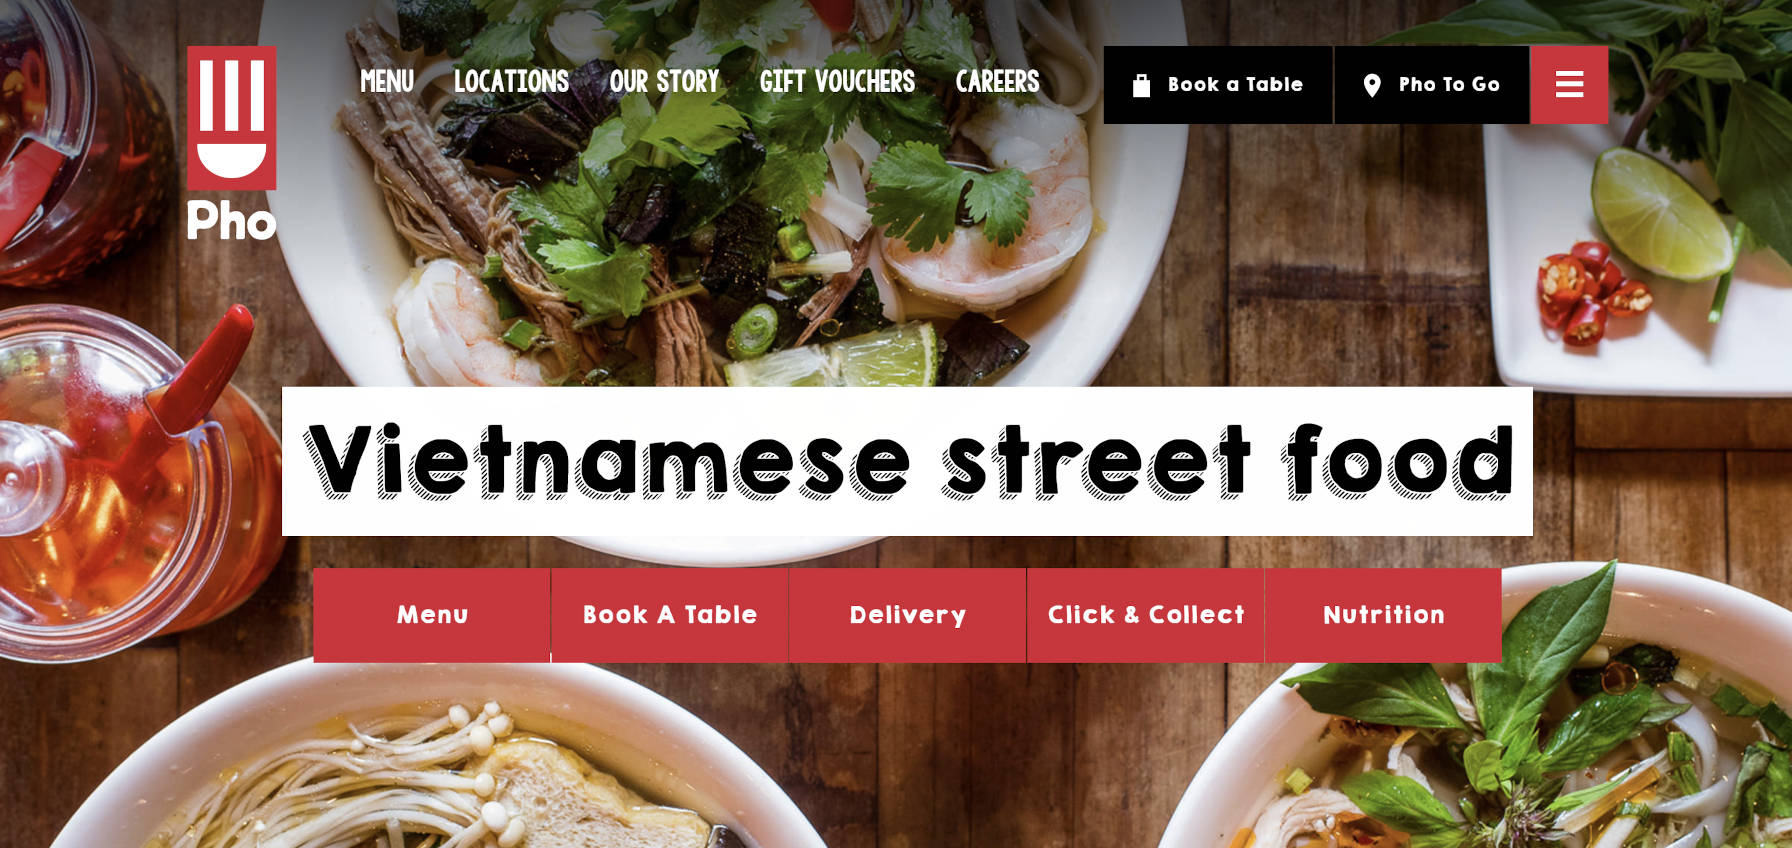 Screenshot of the Pho Cafe website page header.